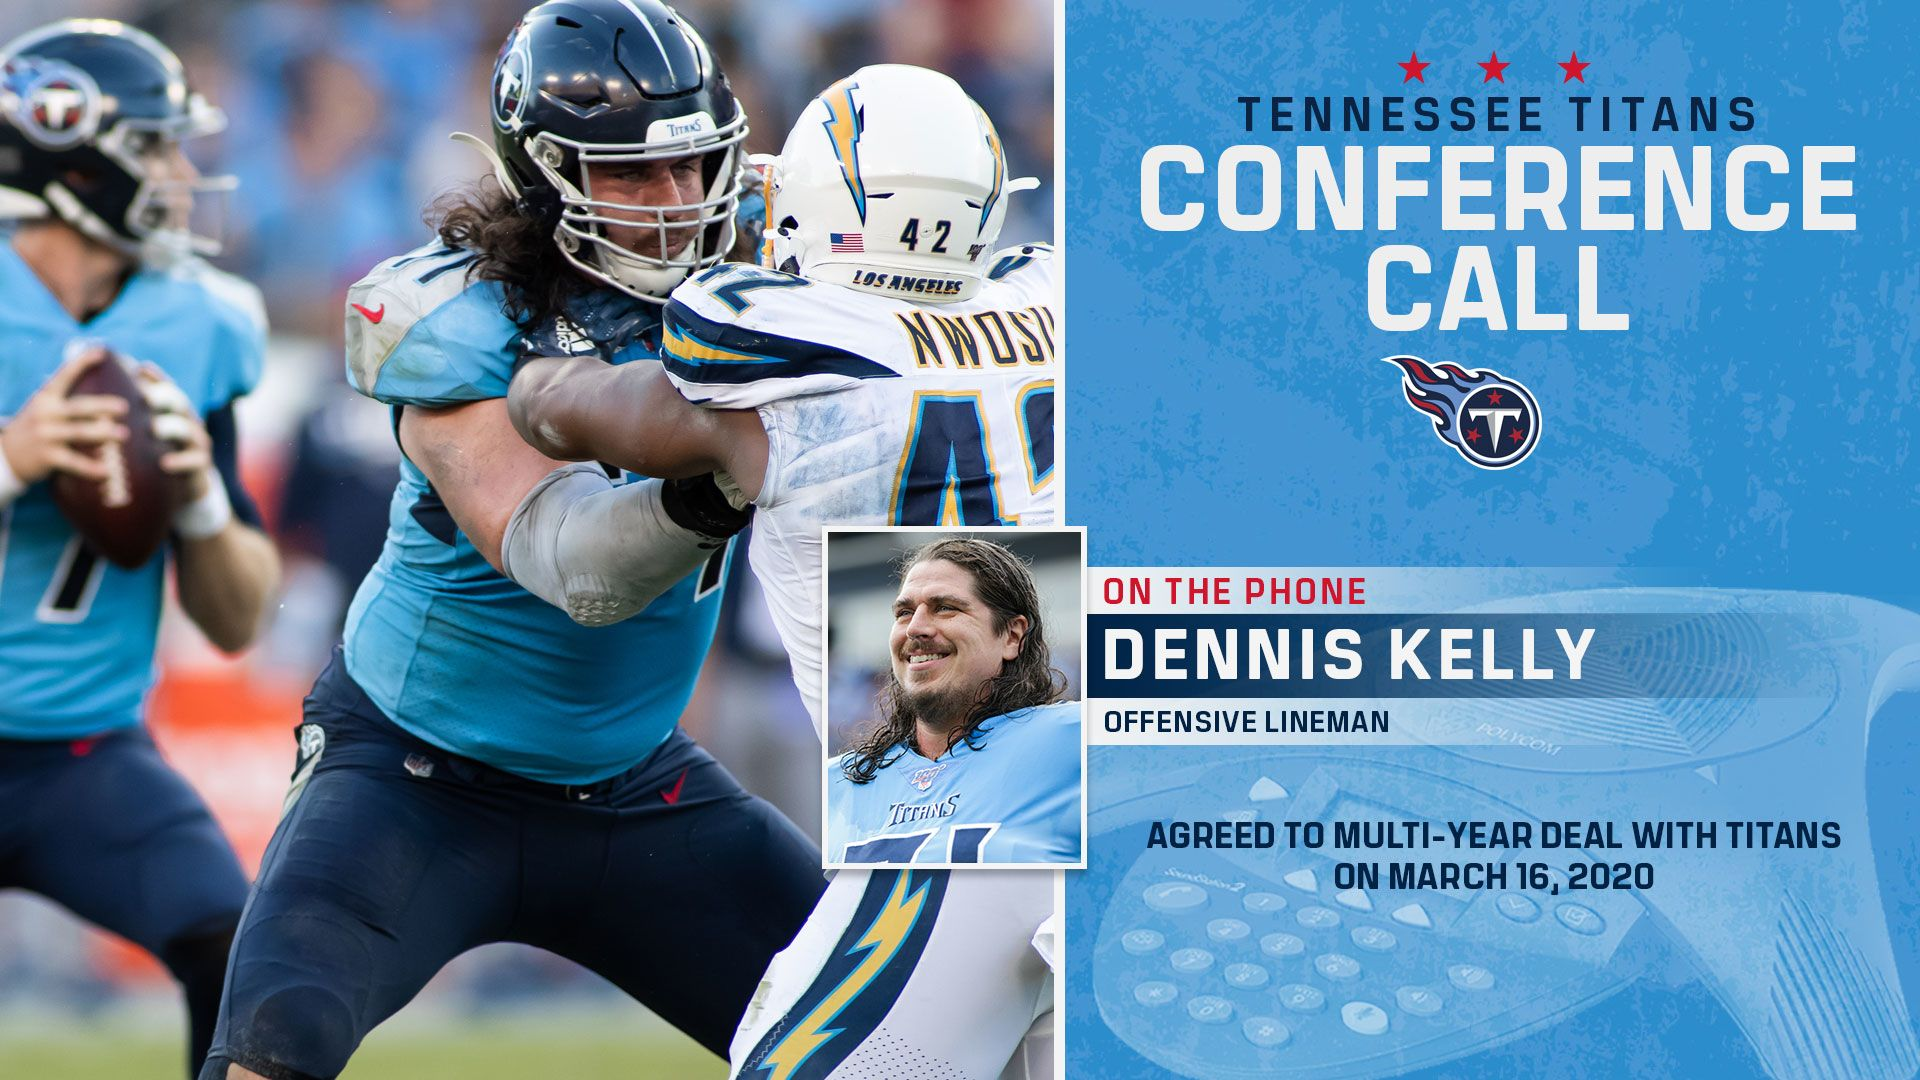 Conference Call - Dennis Kelly